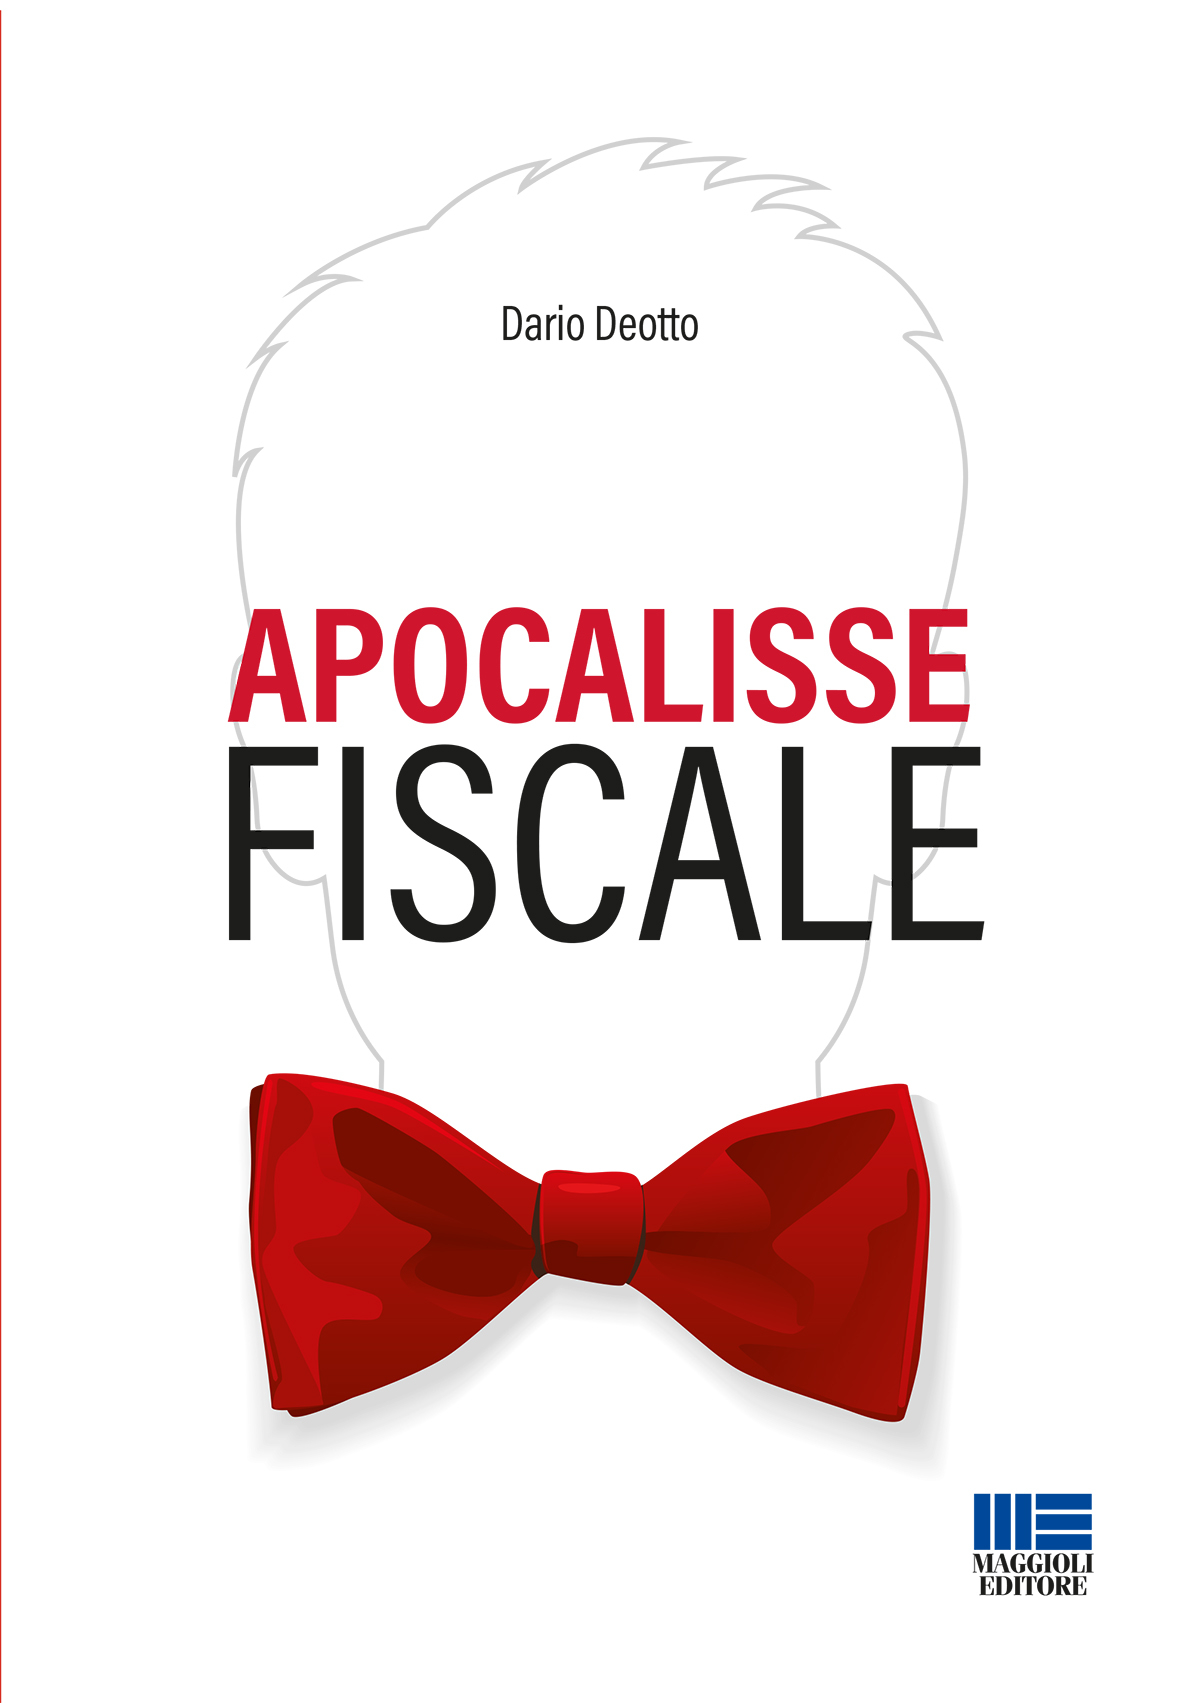 Apocalisse fiscale